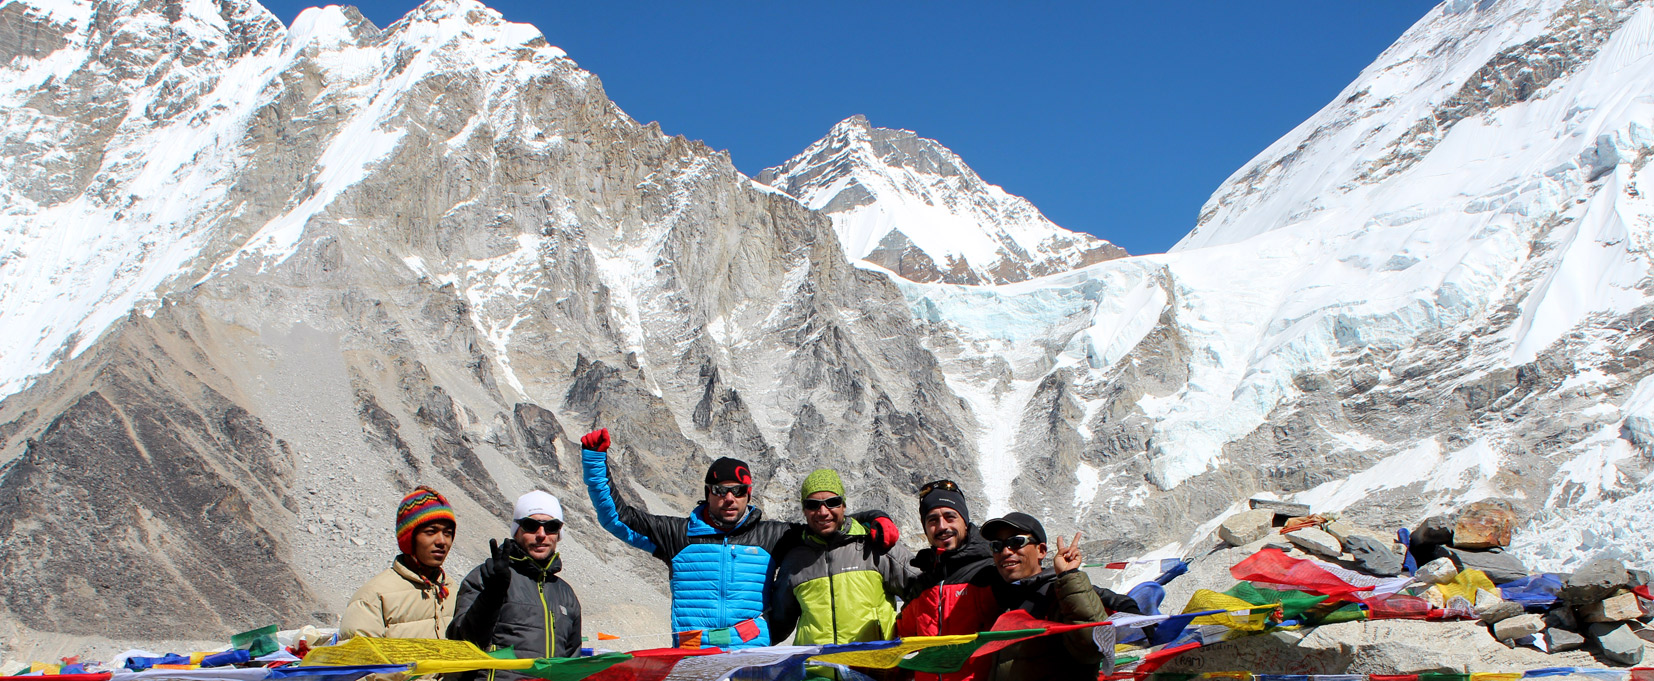 Everest Base Camp Trek (5365m.)